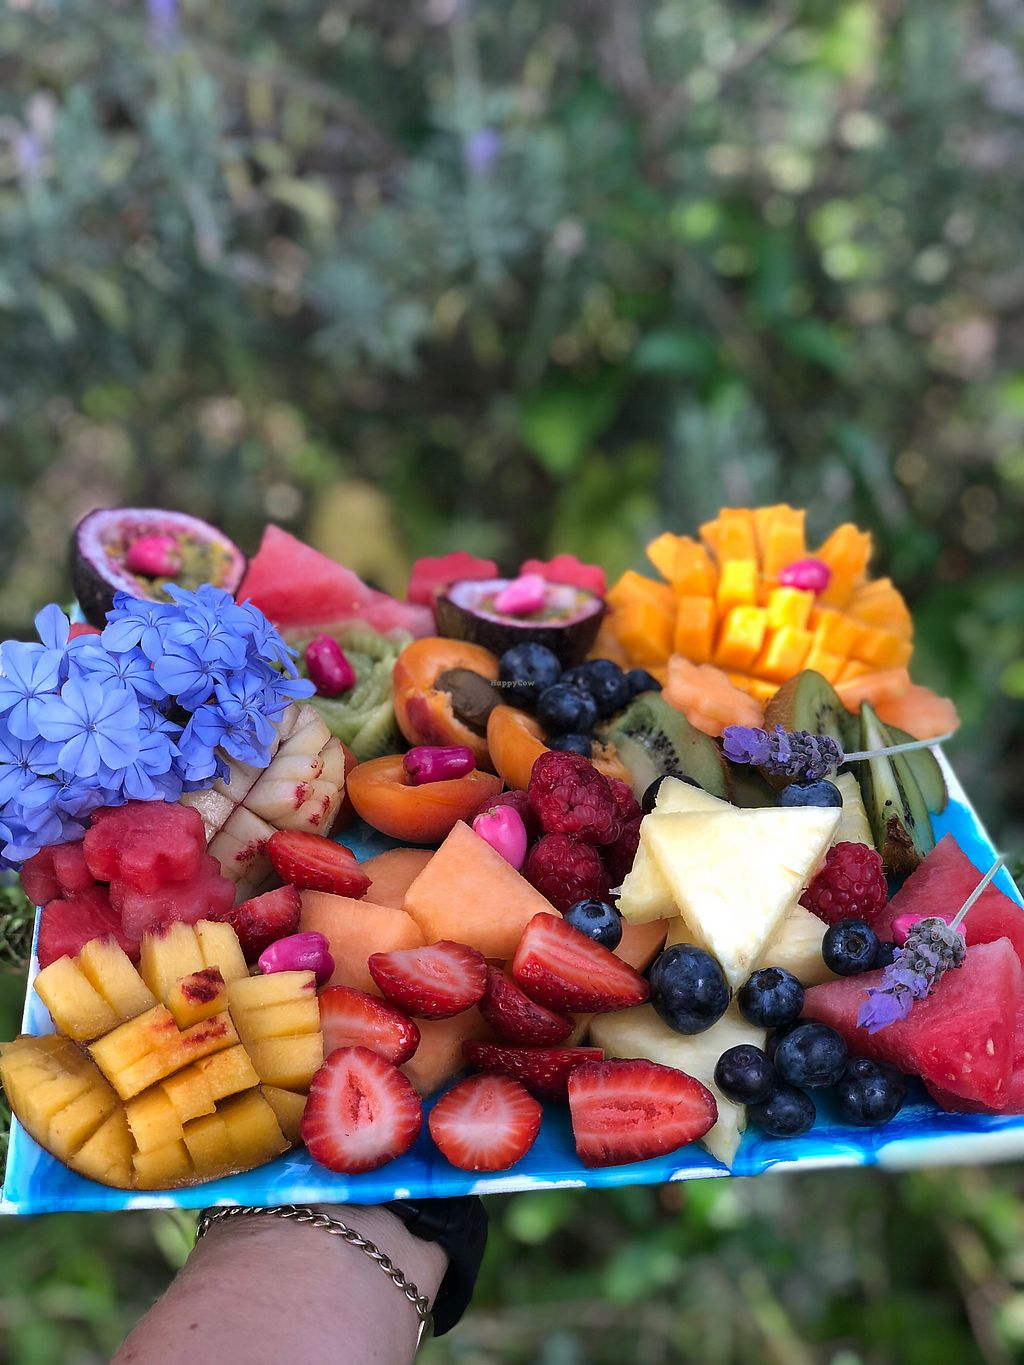 """Photo of Back 2 Earth B&B  by <a href=""""/members/profile/JennyHammond"""">JennyHammond</a> <br/>Organic fruit platter <br/> March 4, 2018  - <a href='/contact/abuse/image/96289/366419'>Report</a>"""